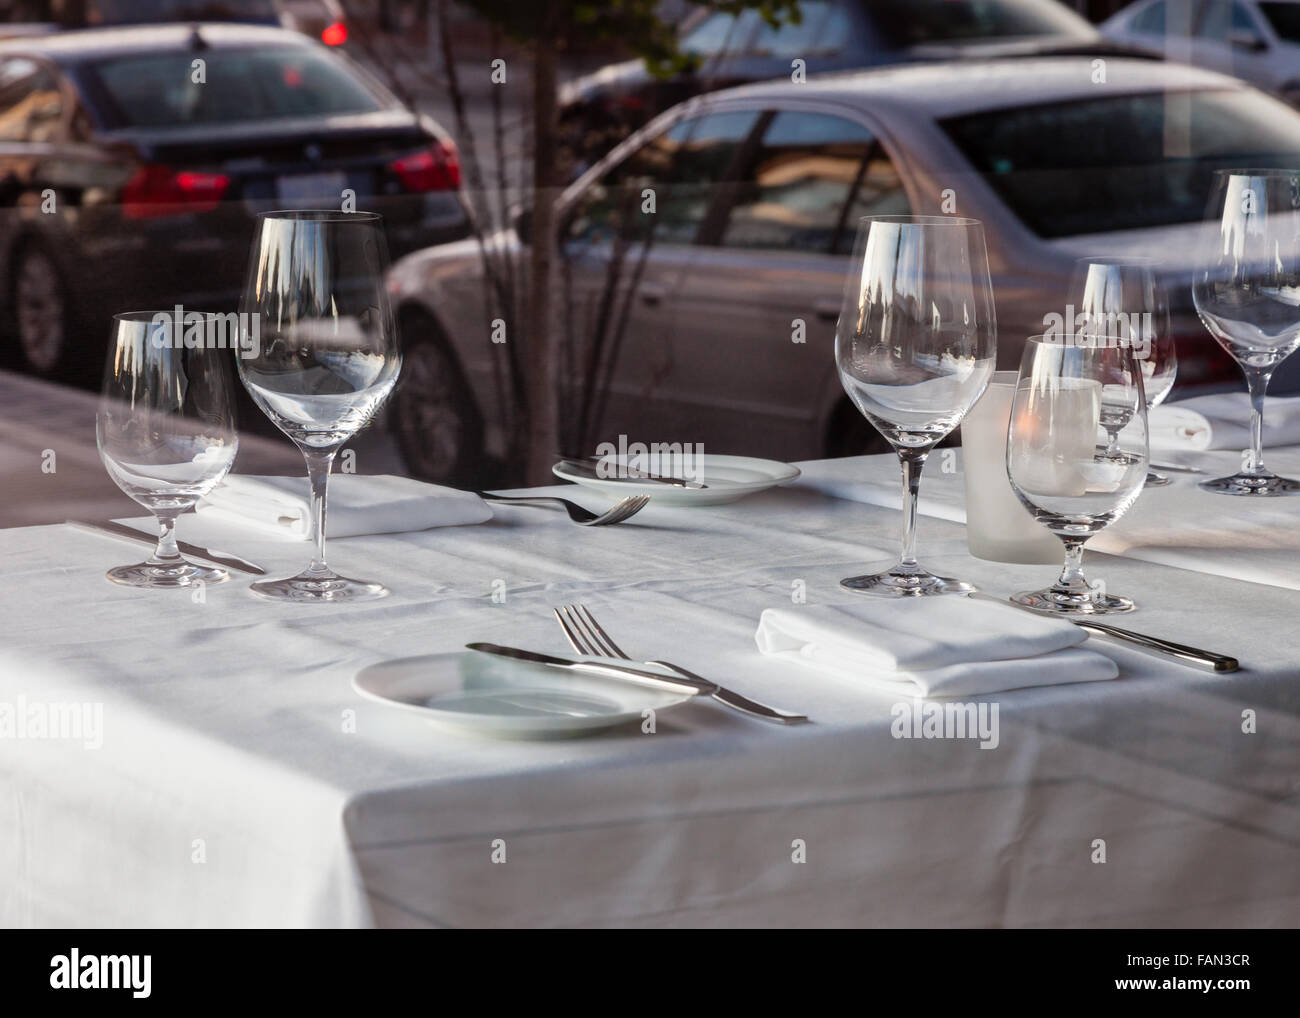 Fine dining Table setting in a restaurant with white tablecloth napkins and wine glasses. & Fine dining Table setting in a restaurant with white tablecloth ...